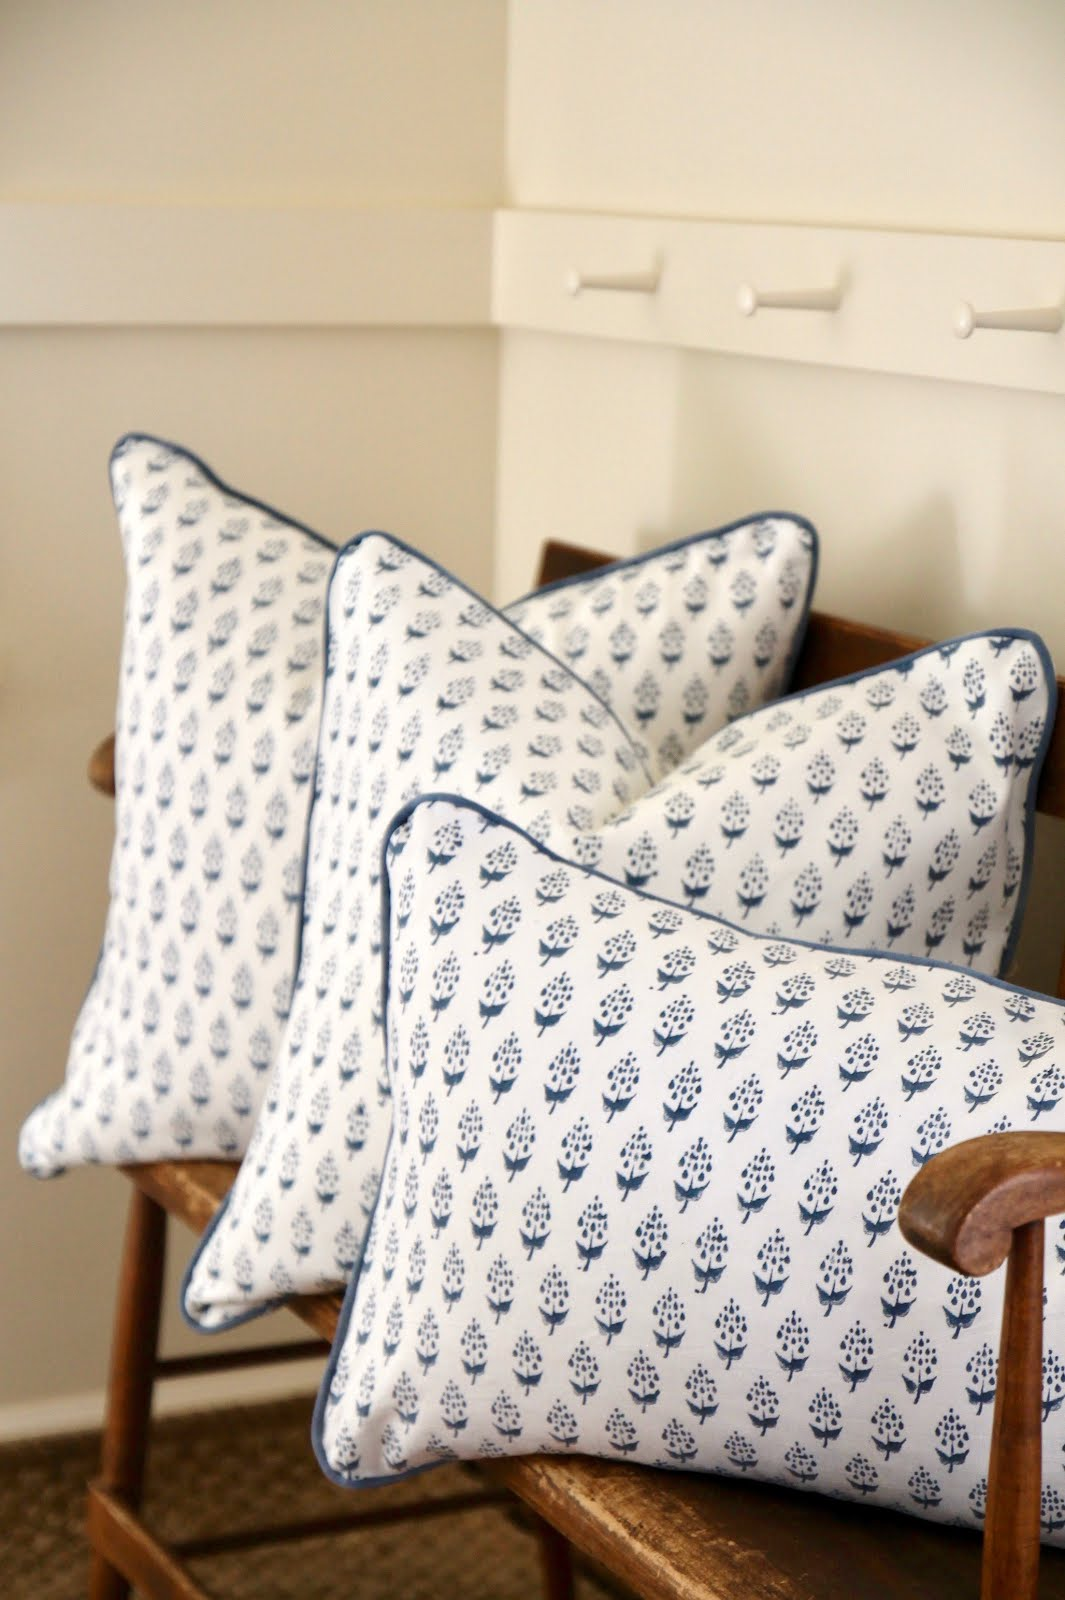 Block Print Pillows, $28-38